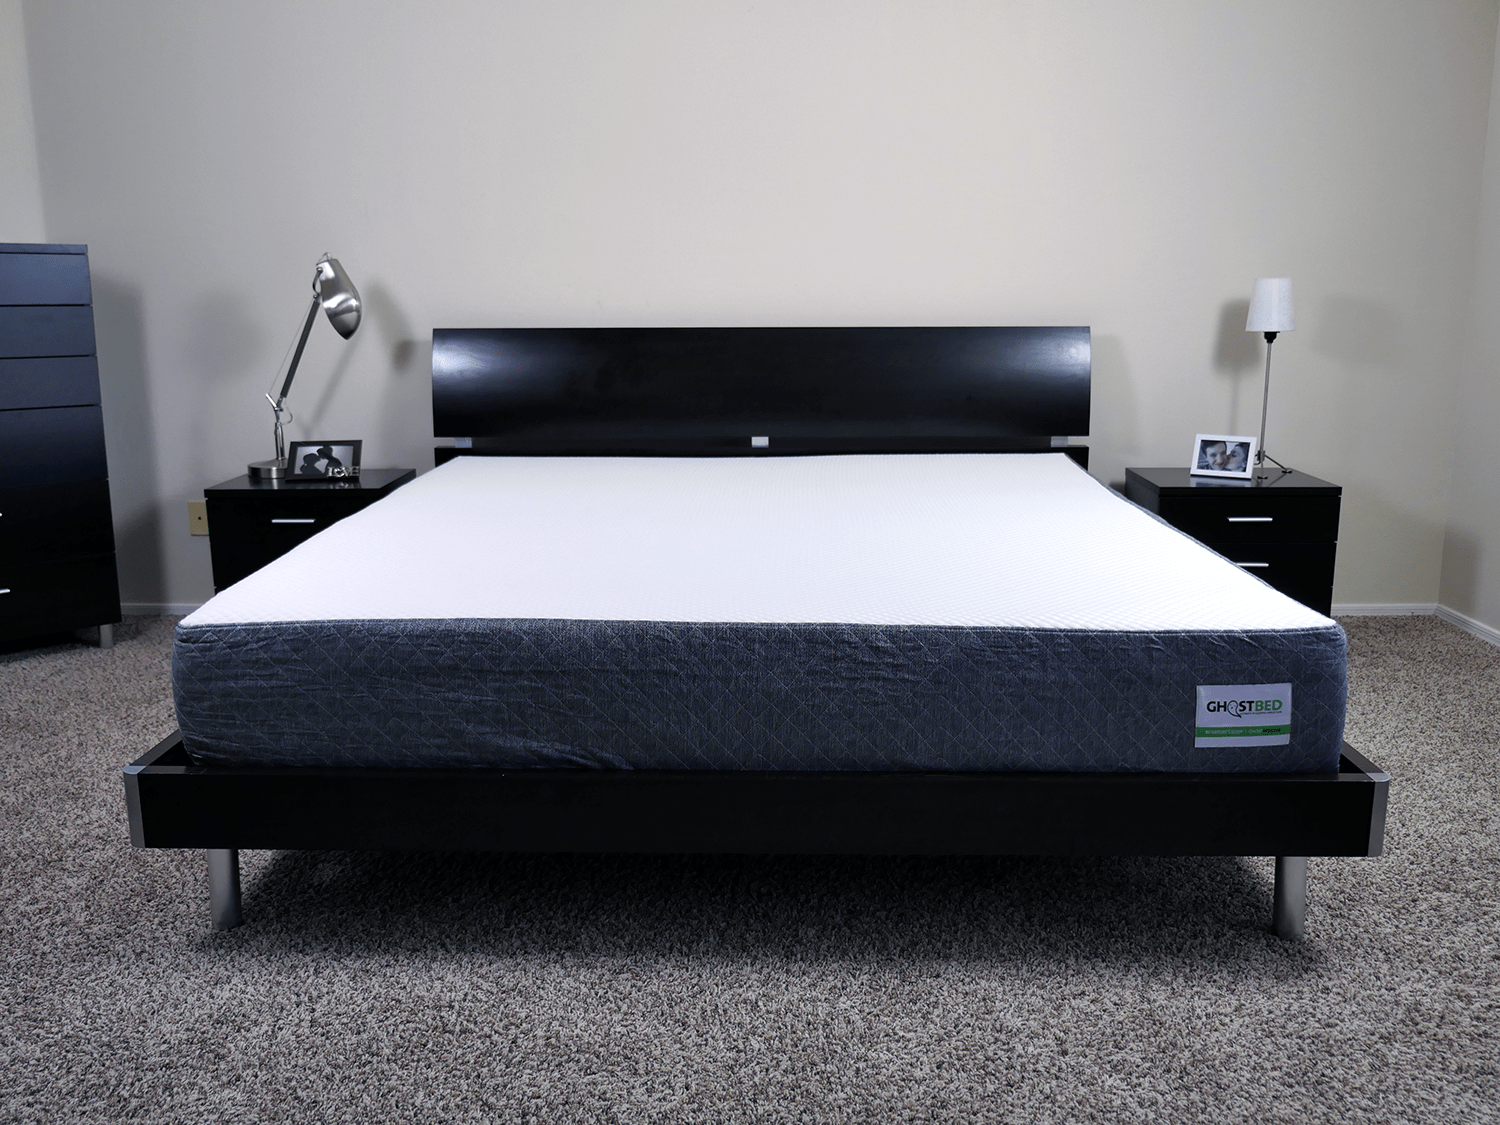 ghostbed-mattress GhostBed vs. Purple Mattress Review